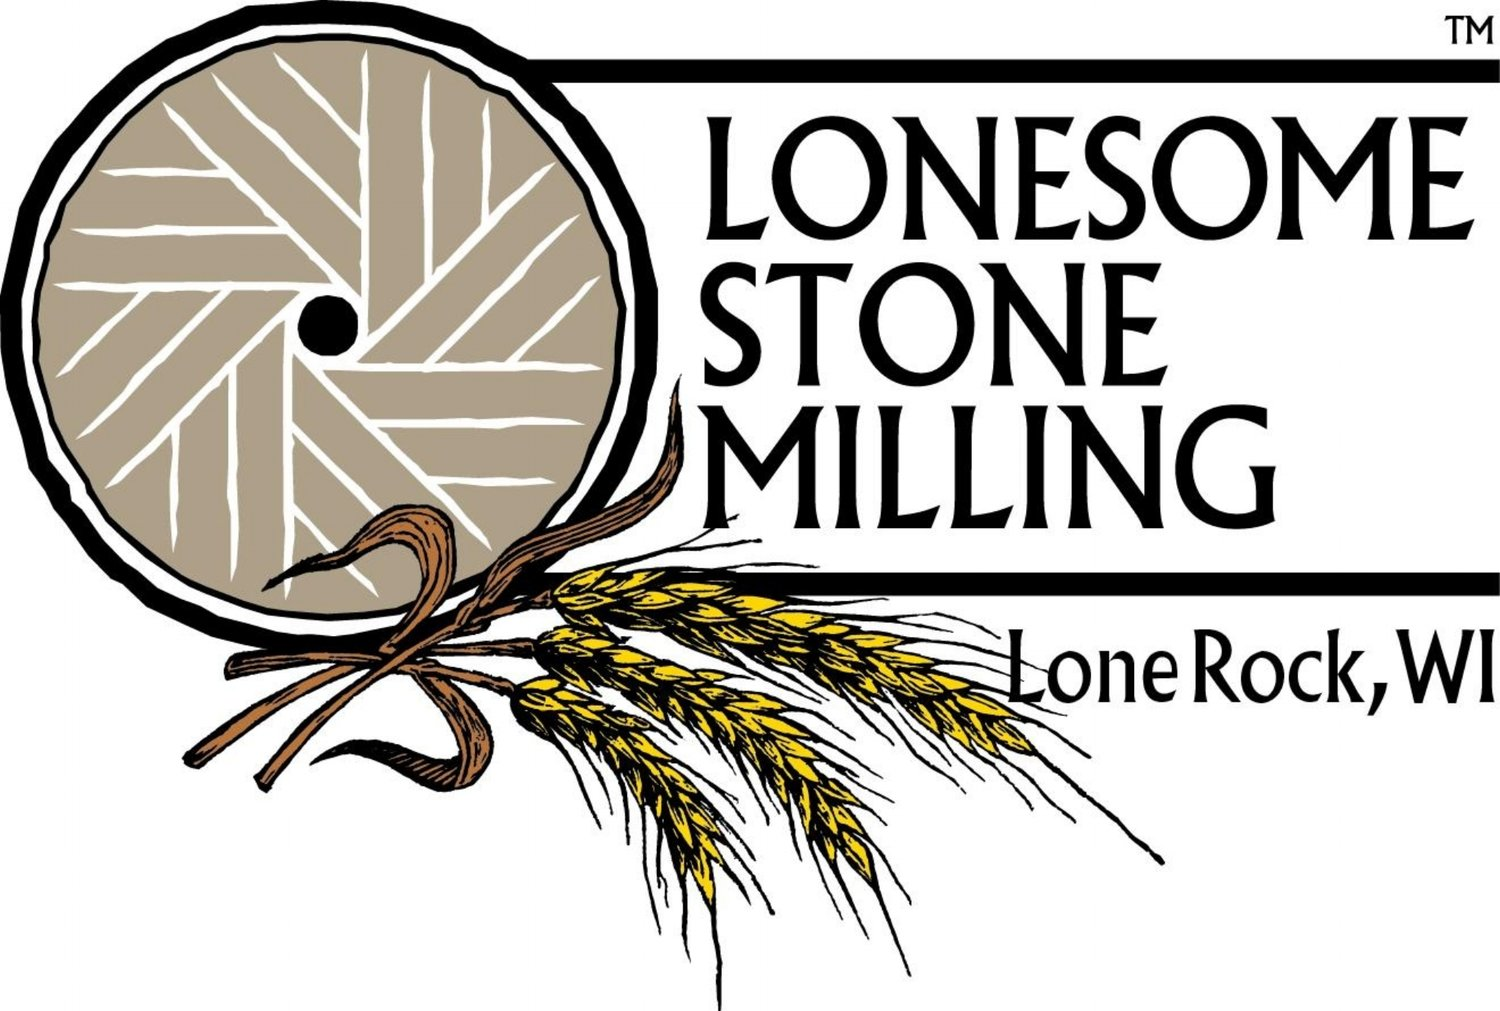 Lonesome Stone Mill